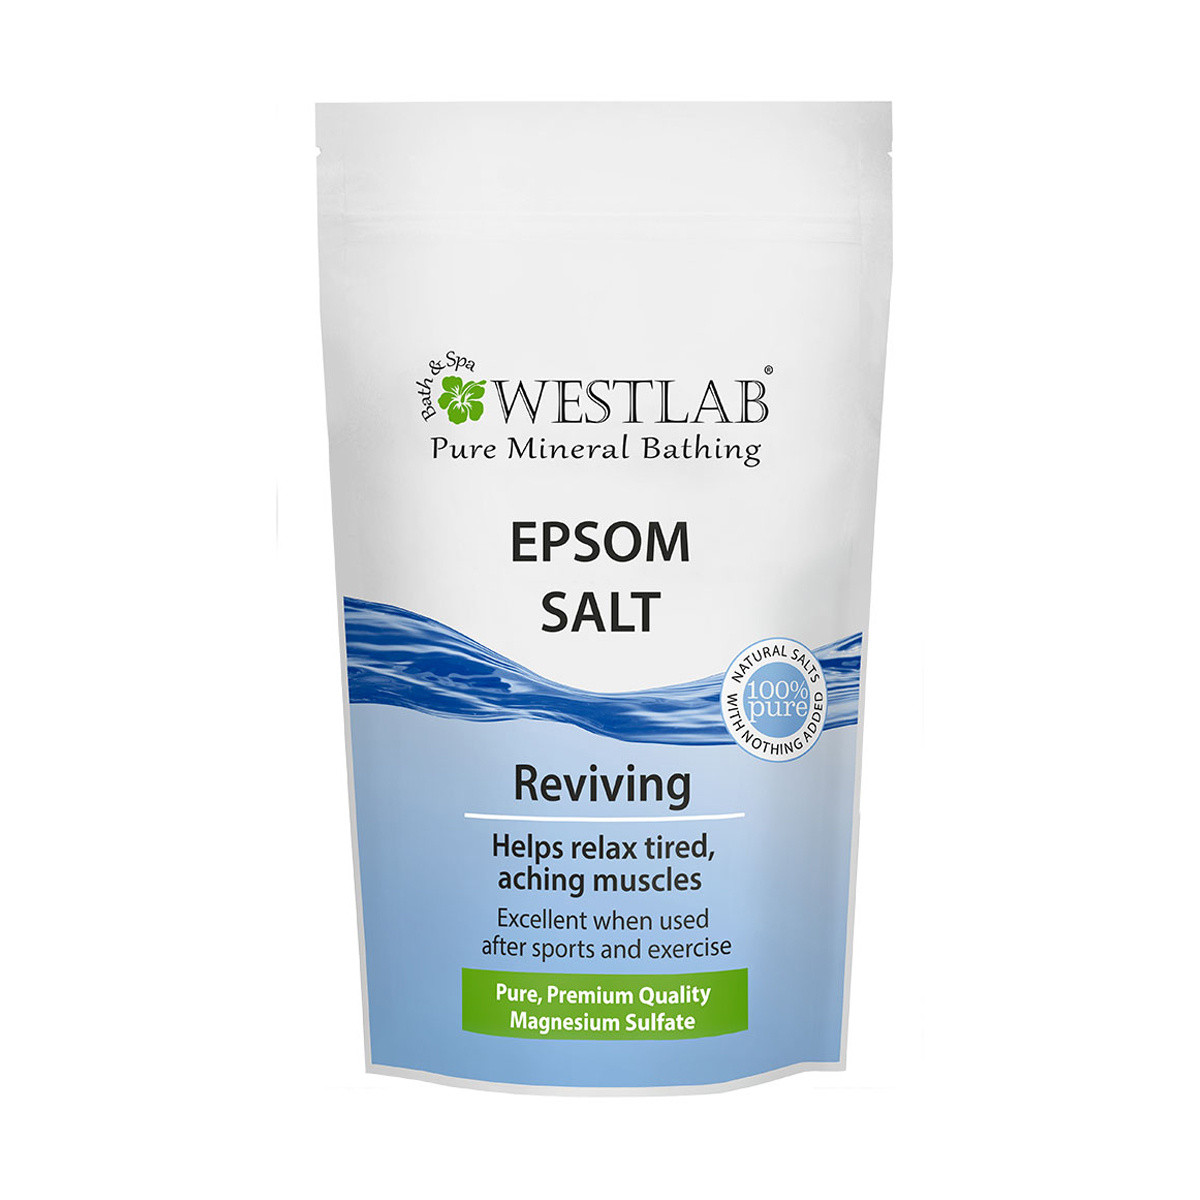 Westlab Pure Mineral Bathing Epsom Salt